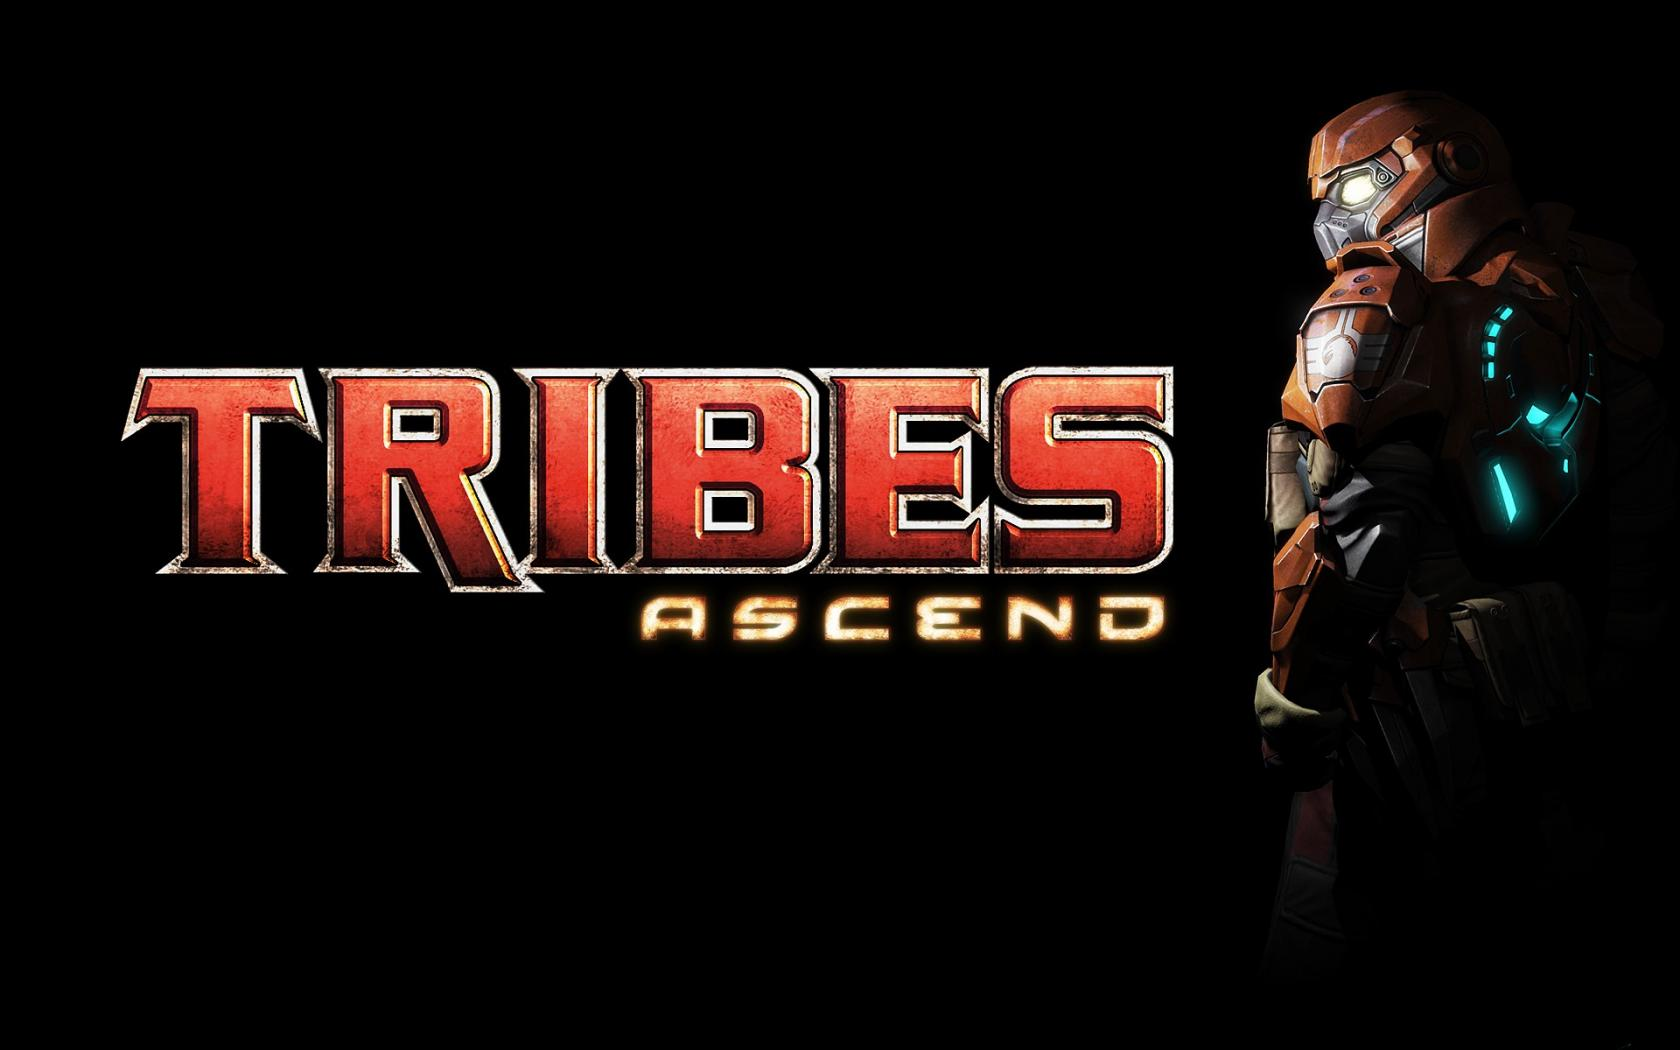 First Look: Tribes Ascend